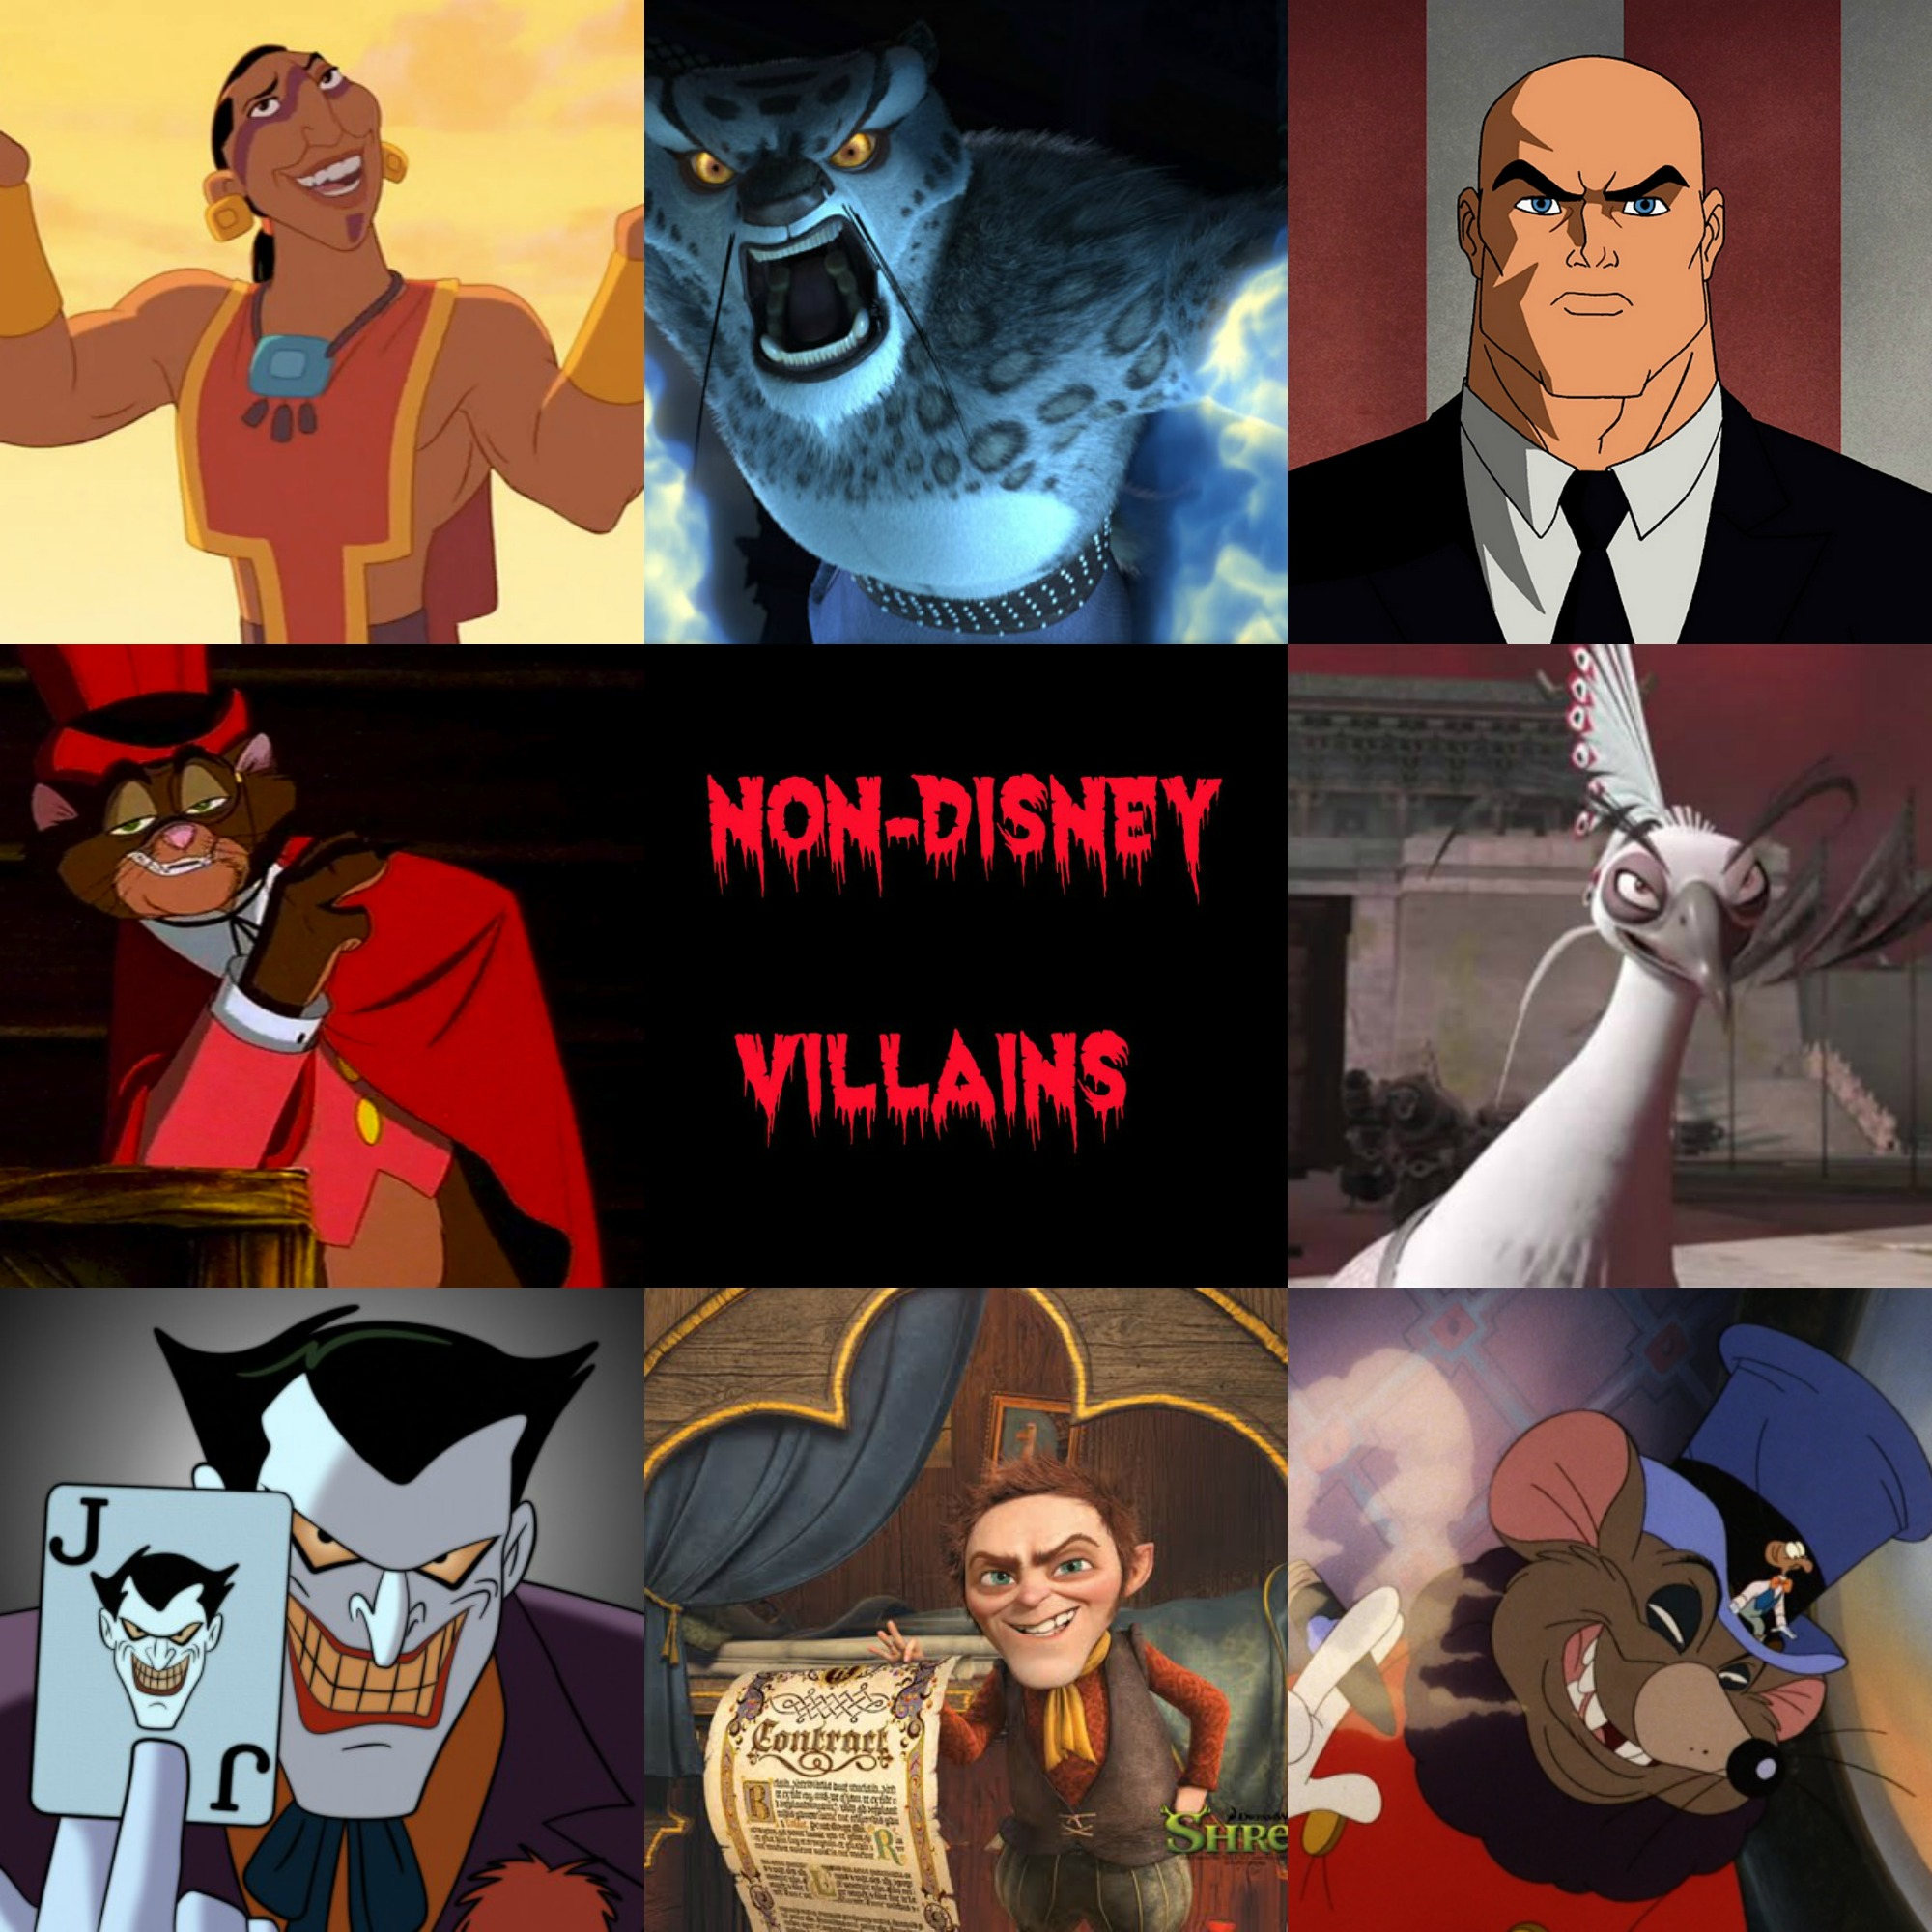 Non-Disney Villains